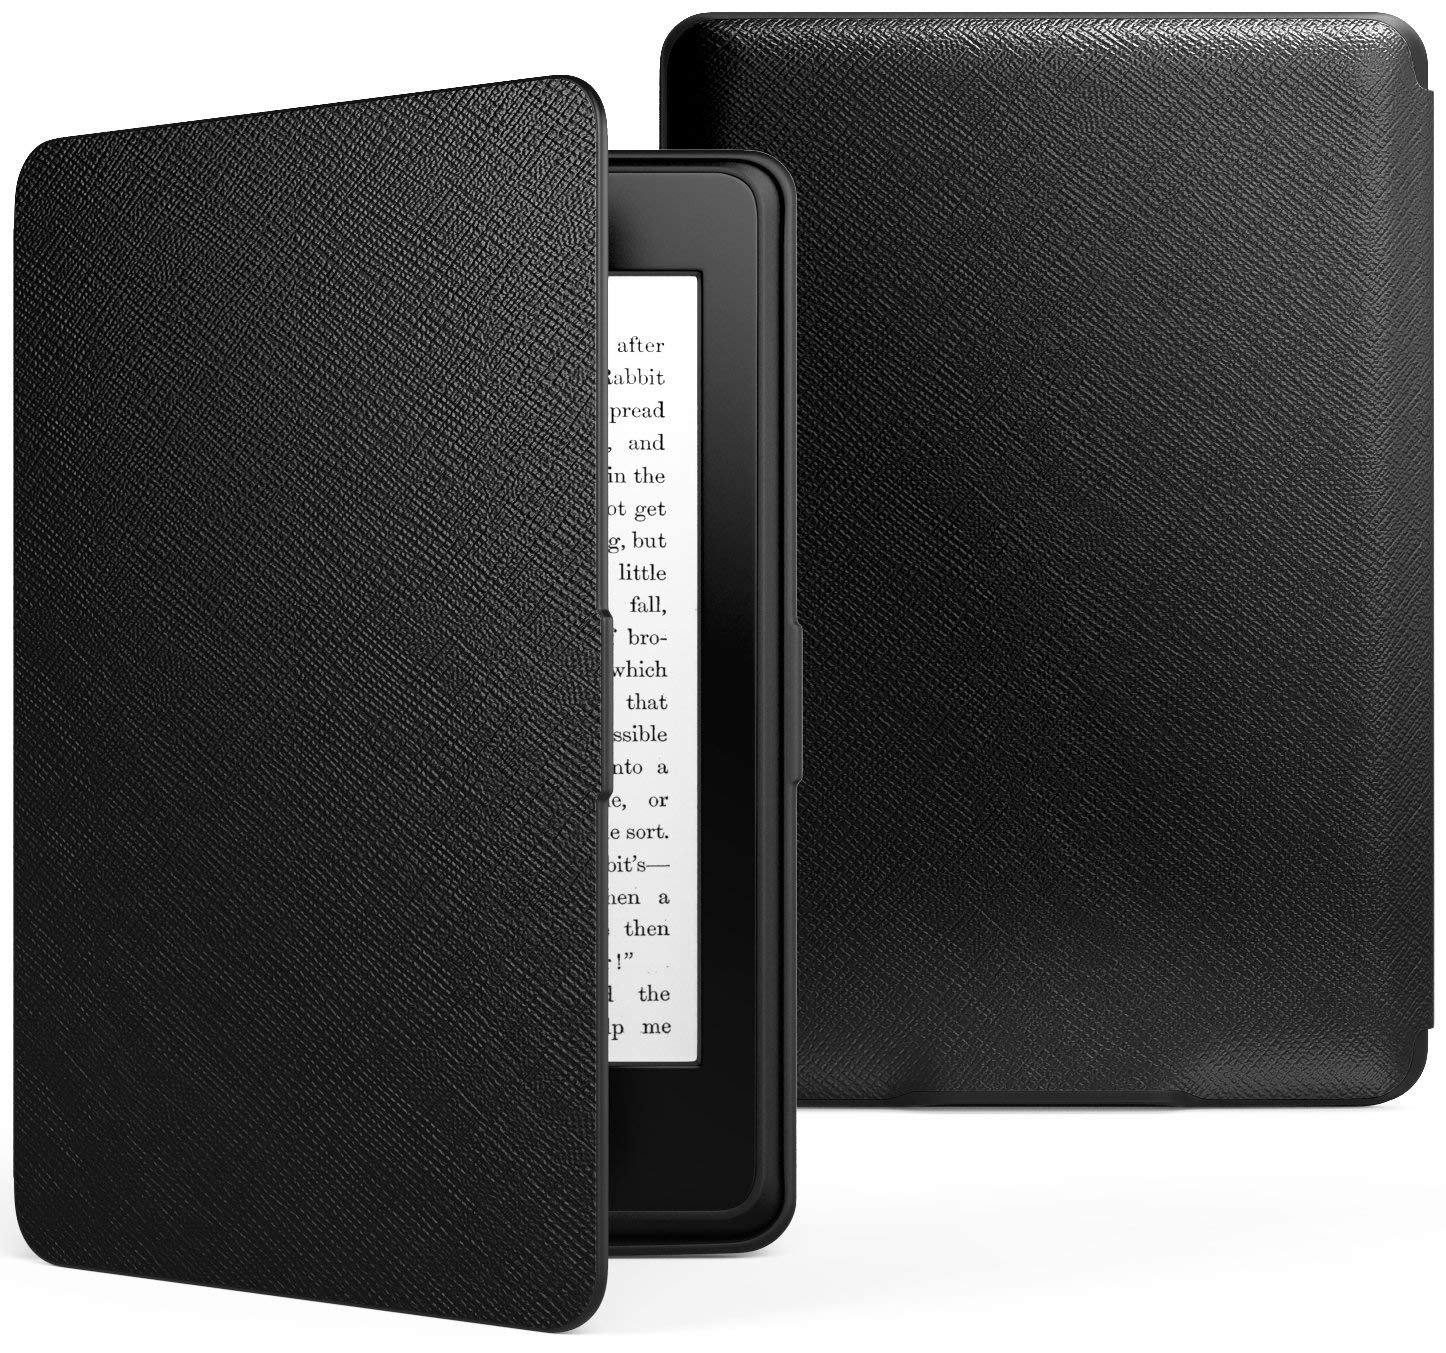 newest 8fb8c 629e2 Case cover For Kindle Paperwhite 7th Generation - Black   RedTagSA